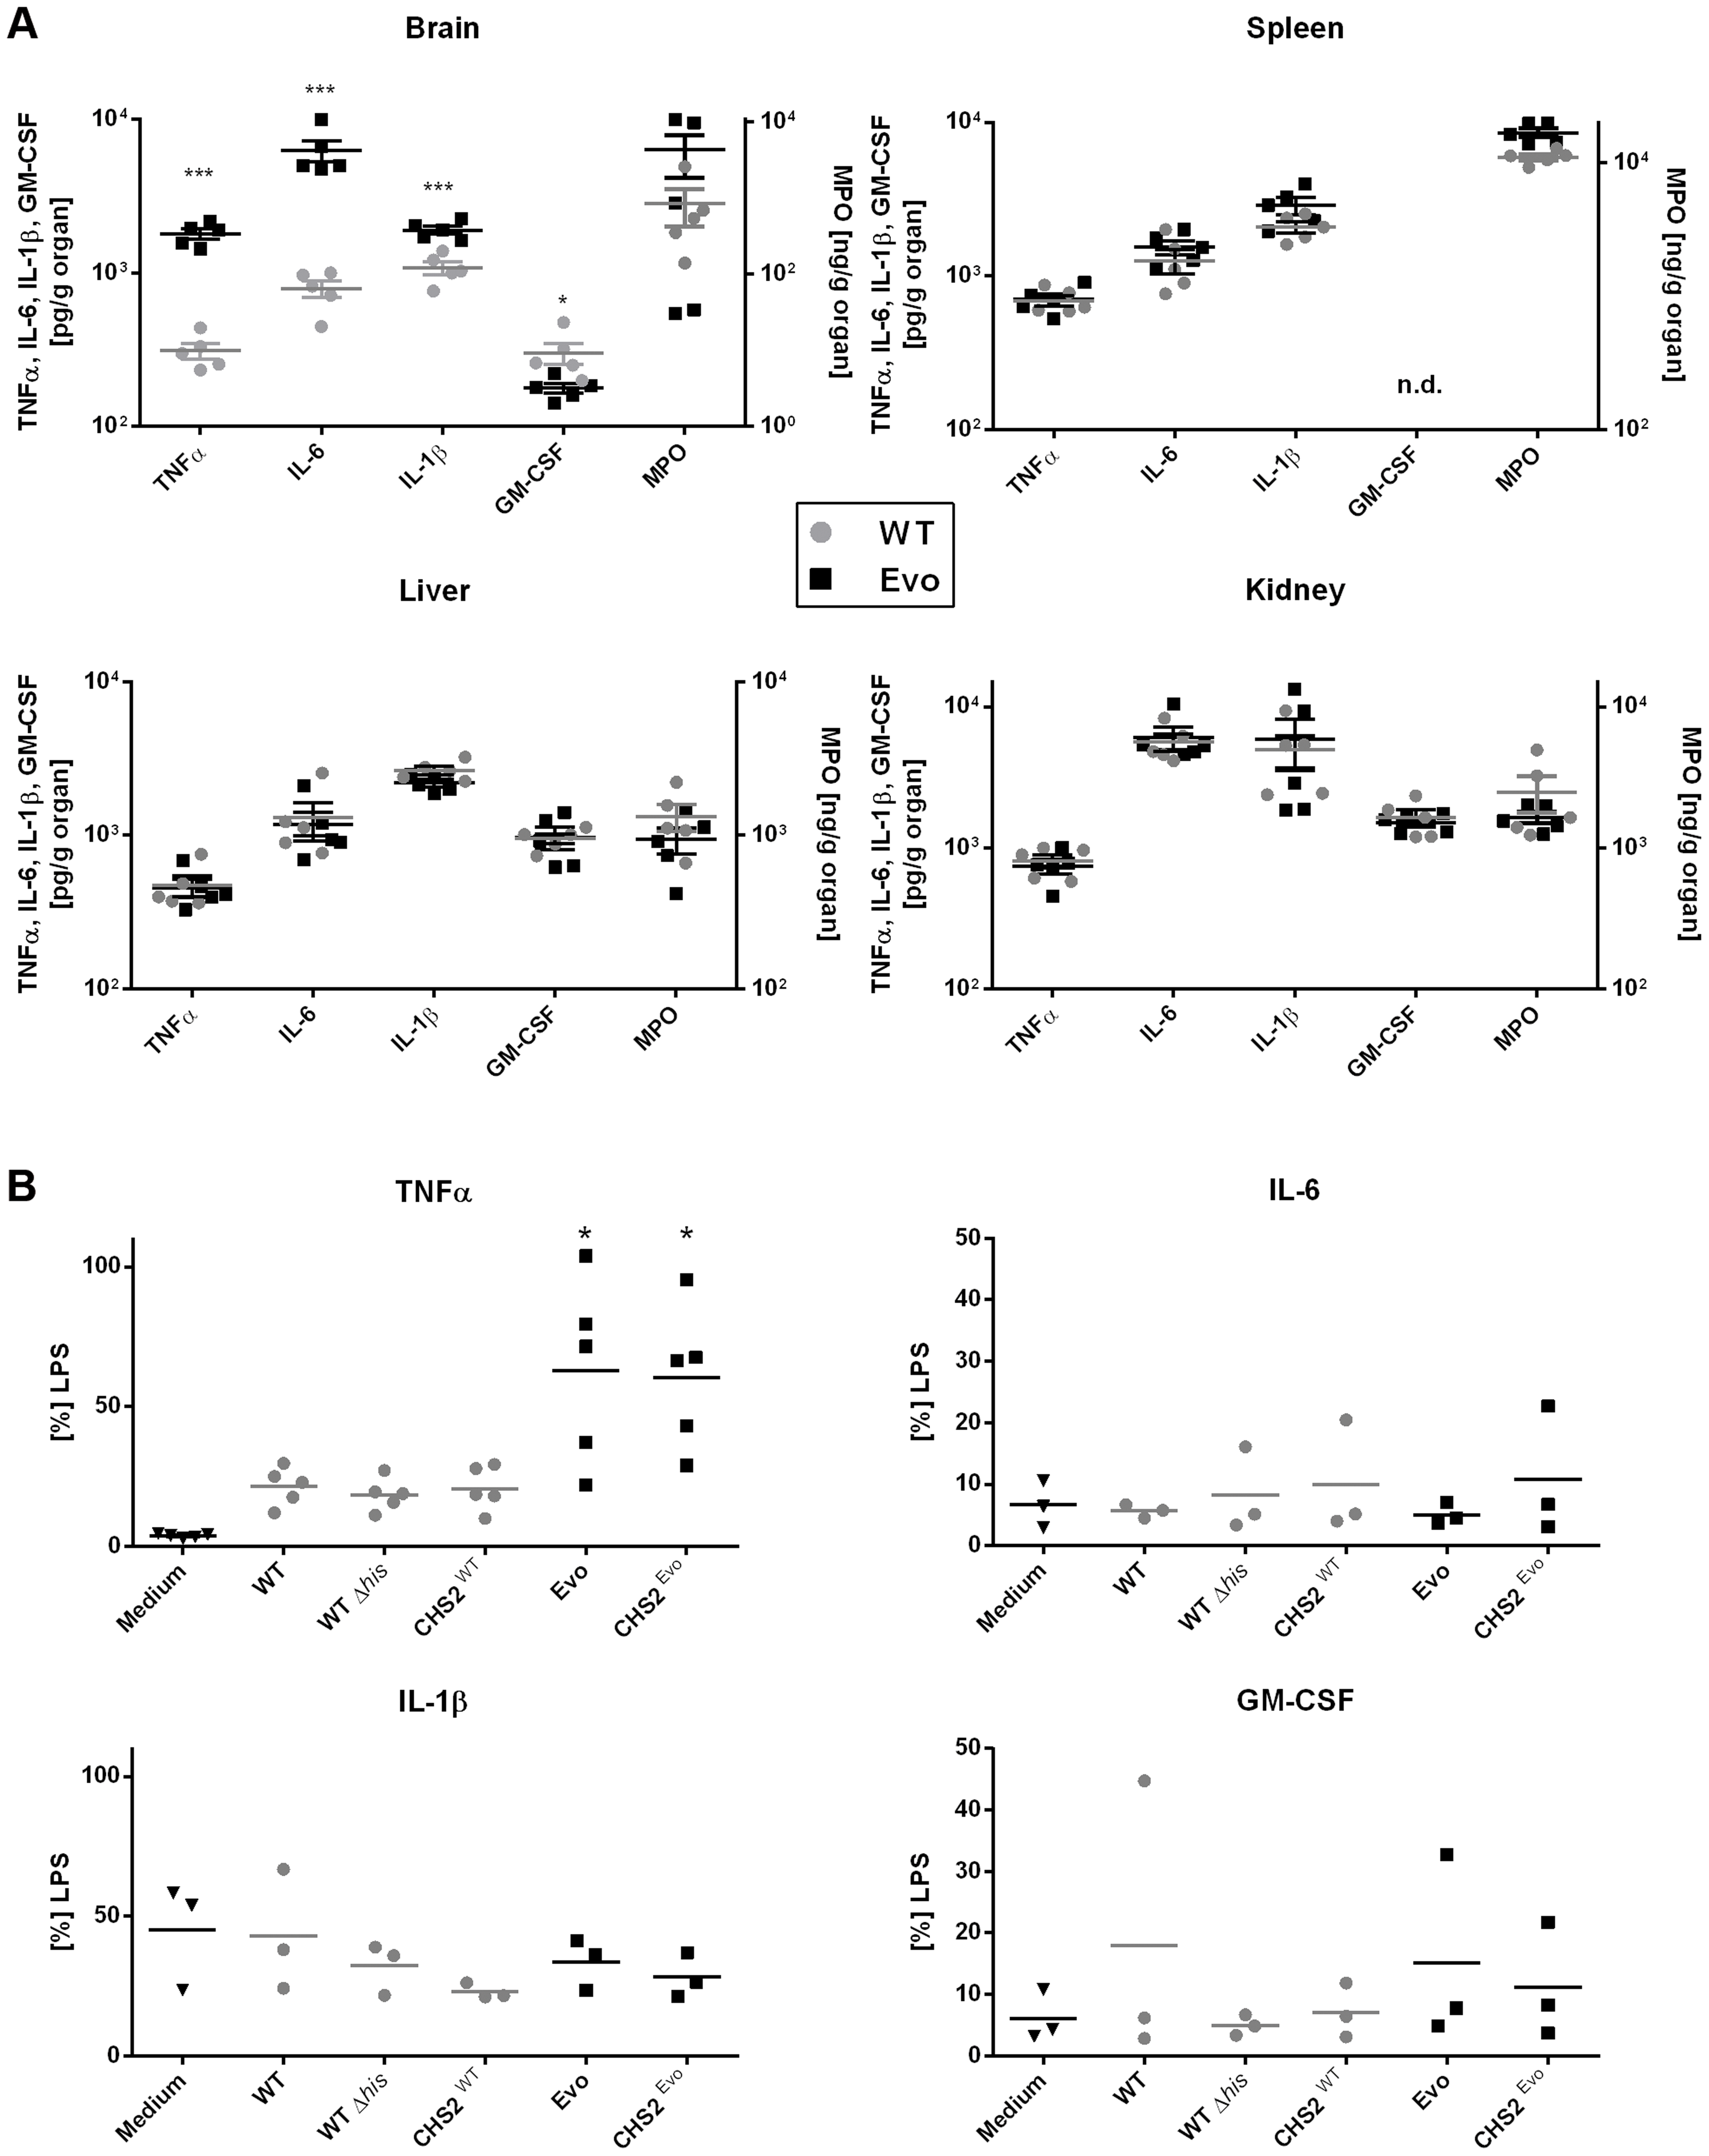 Differences in the host cytokine response to wild type and Evo strains <i>in vivo</i> and <i>in vitro</i>.